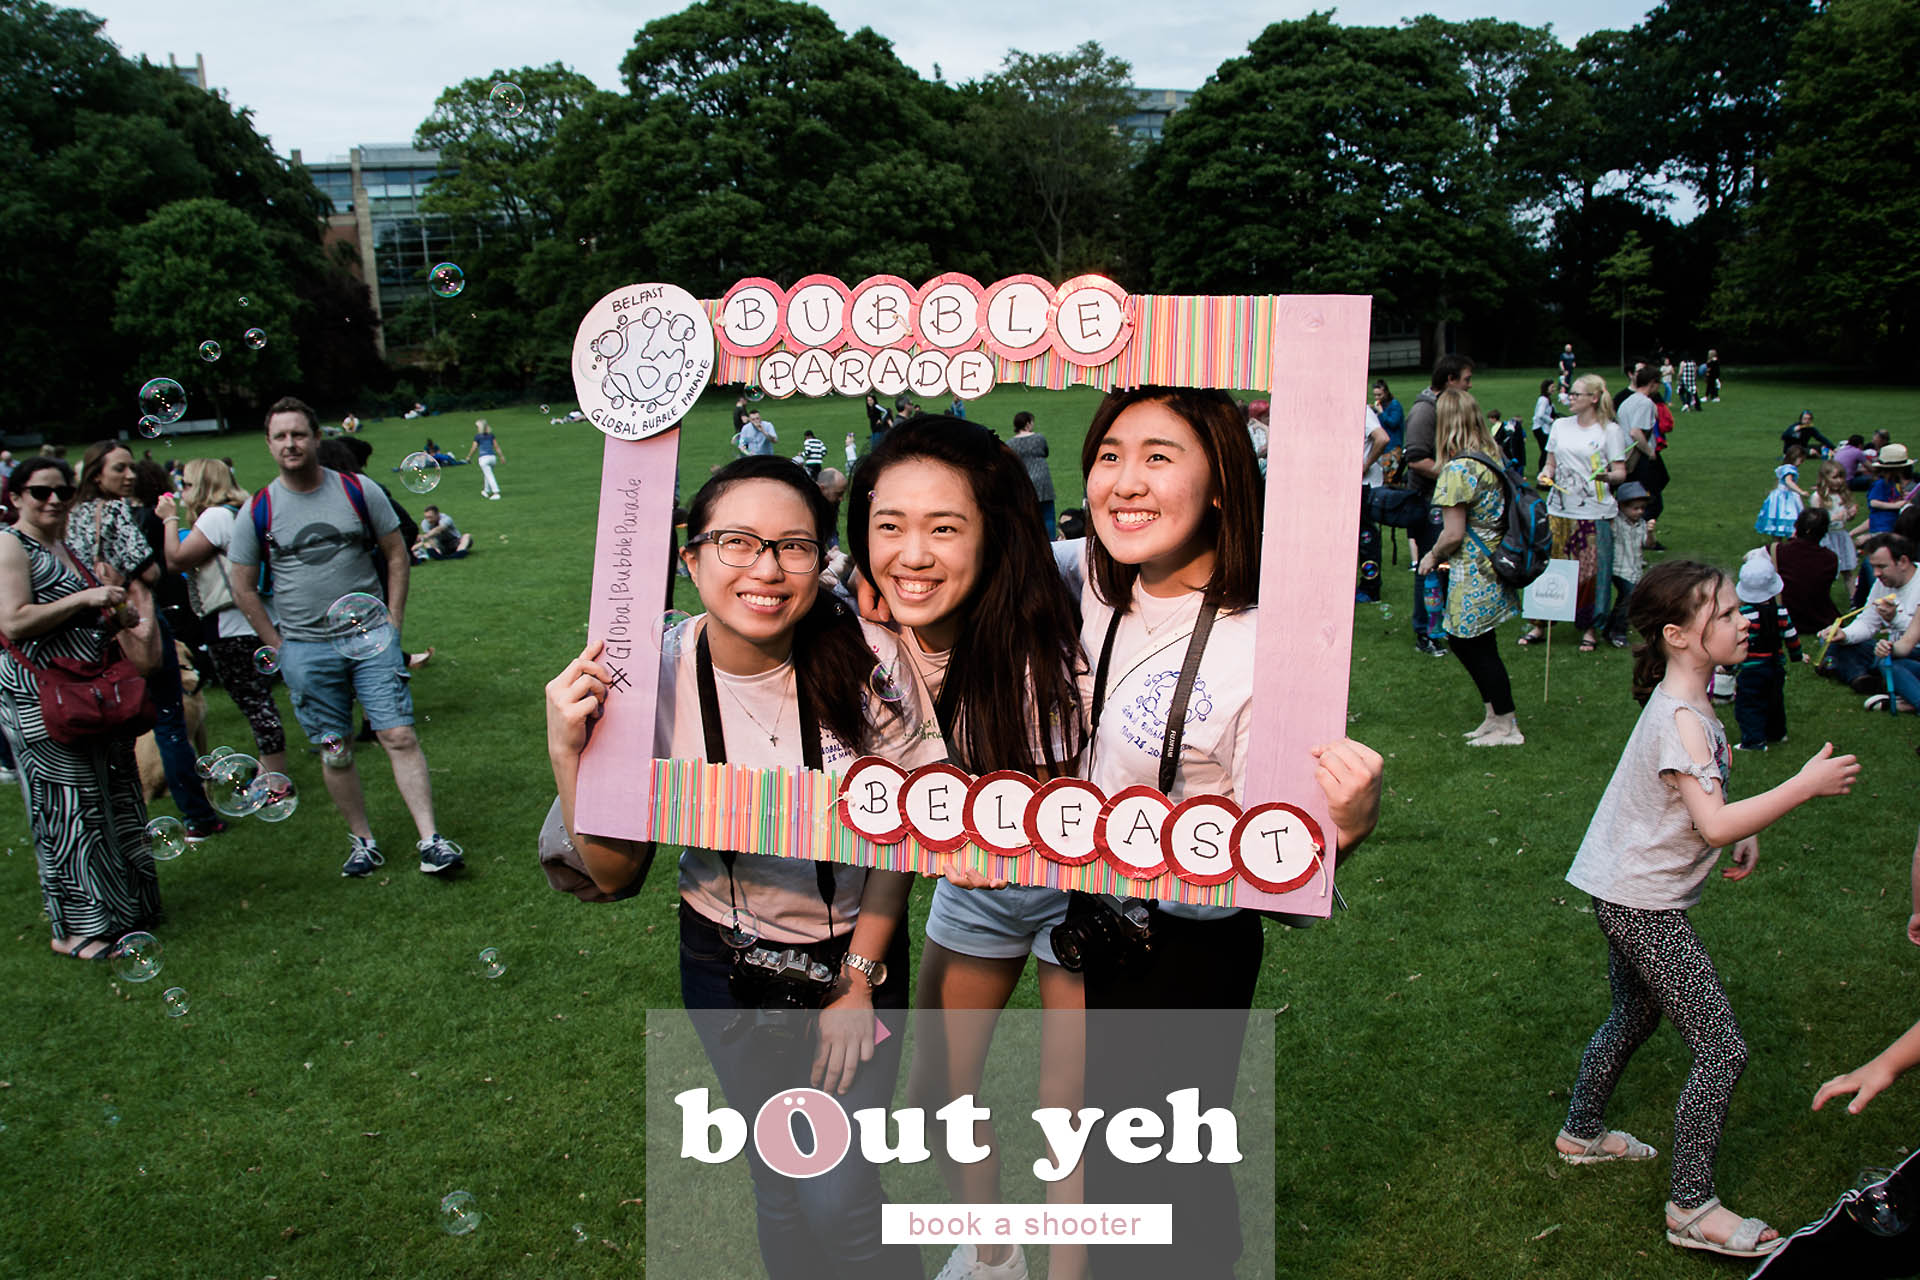 Jiexi, Liz and Gwendoline, Global Bubble Parade Belfast 2017 at Botanic Gardens, Belfast, Northern Ireland - photo 6849.